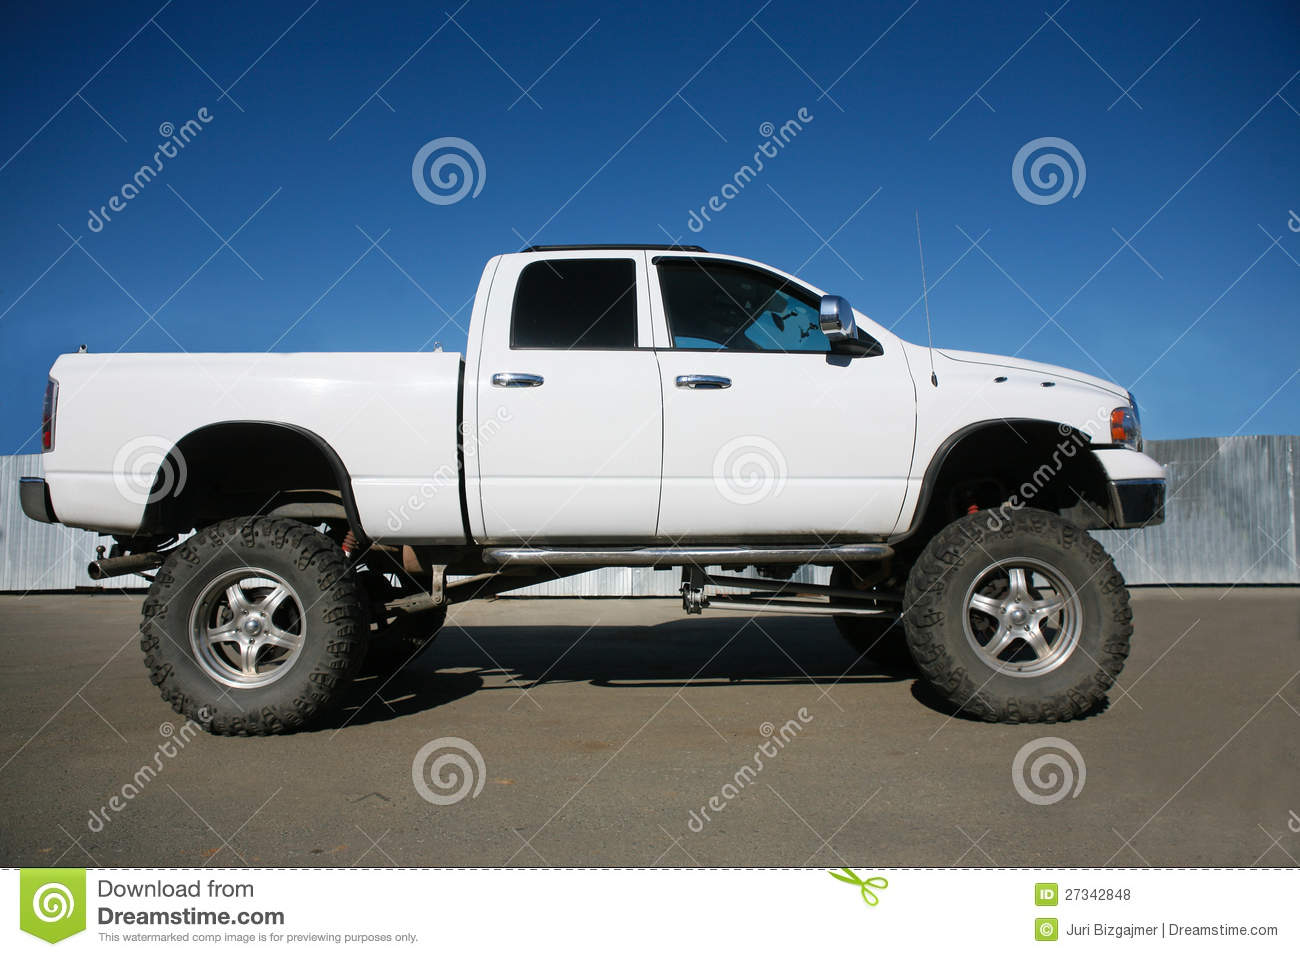 Big Cars: Off-road Car On The Big Wheels Stock Photo